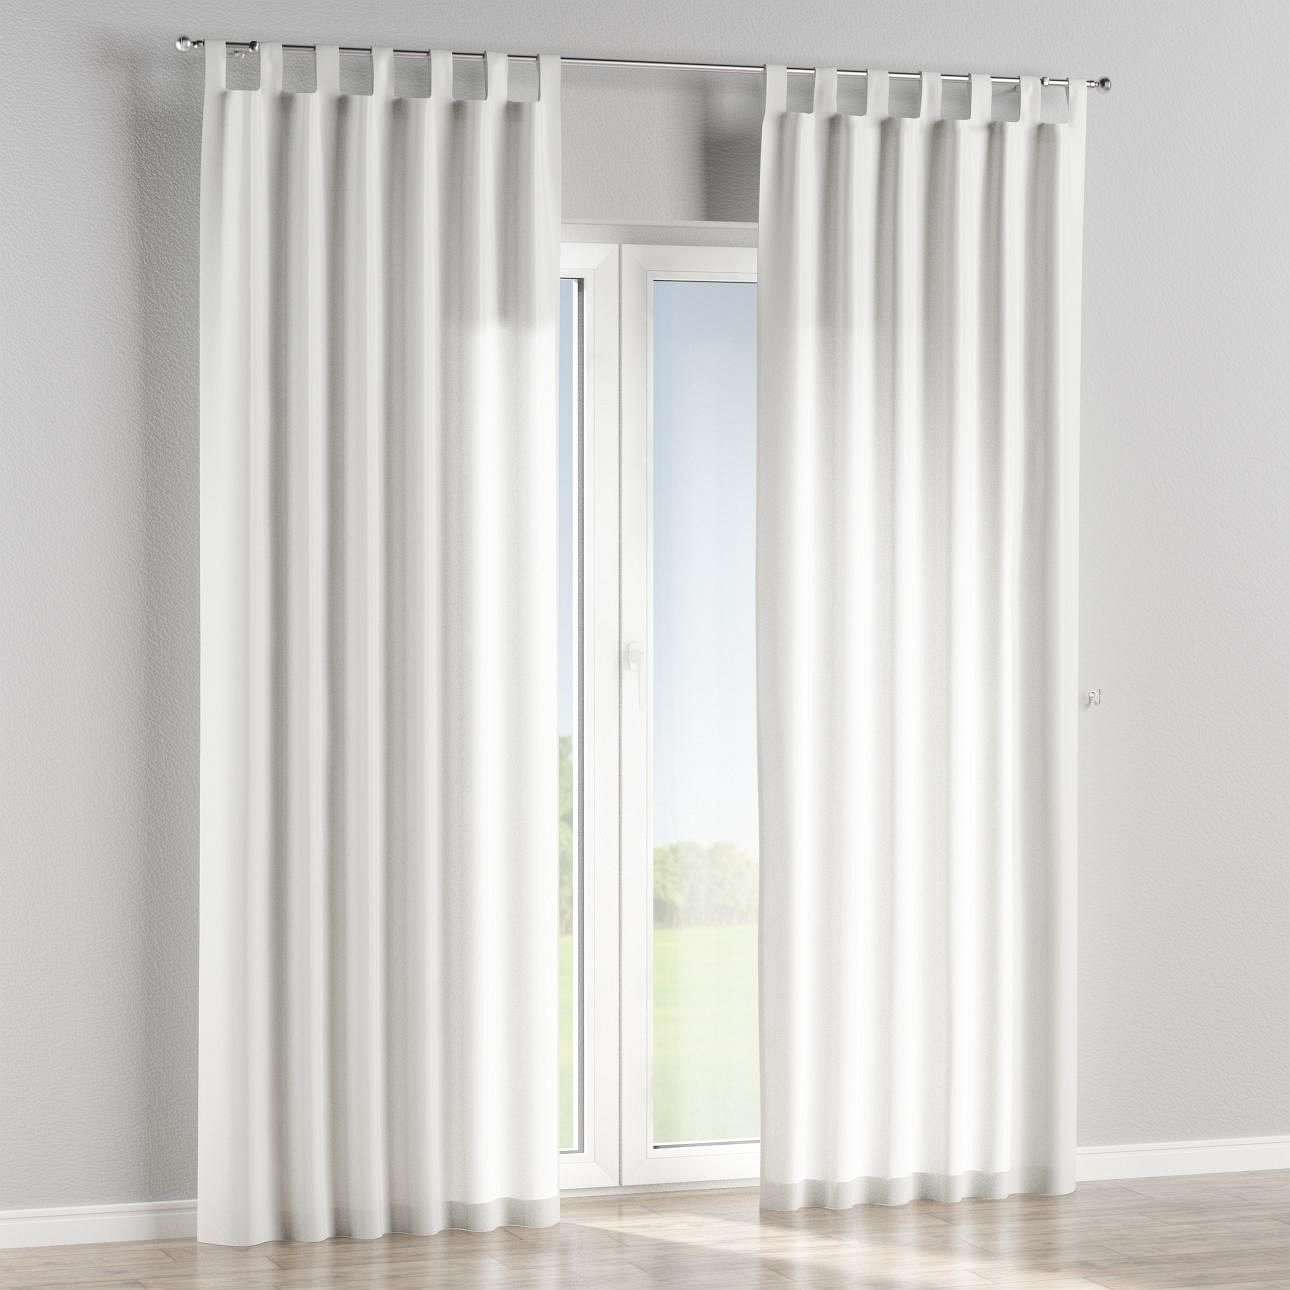 Tab top curtains in collection Norge, fabric: 150-17